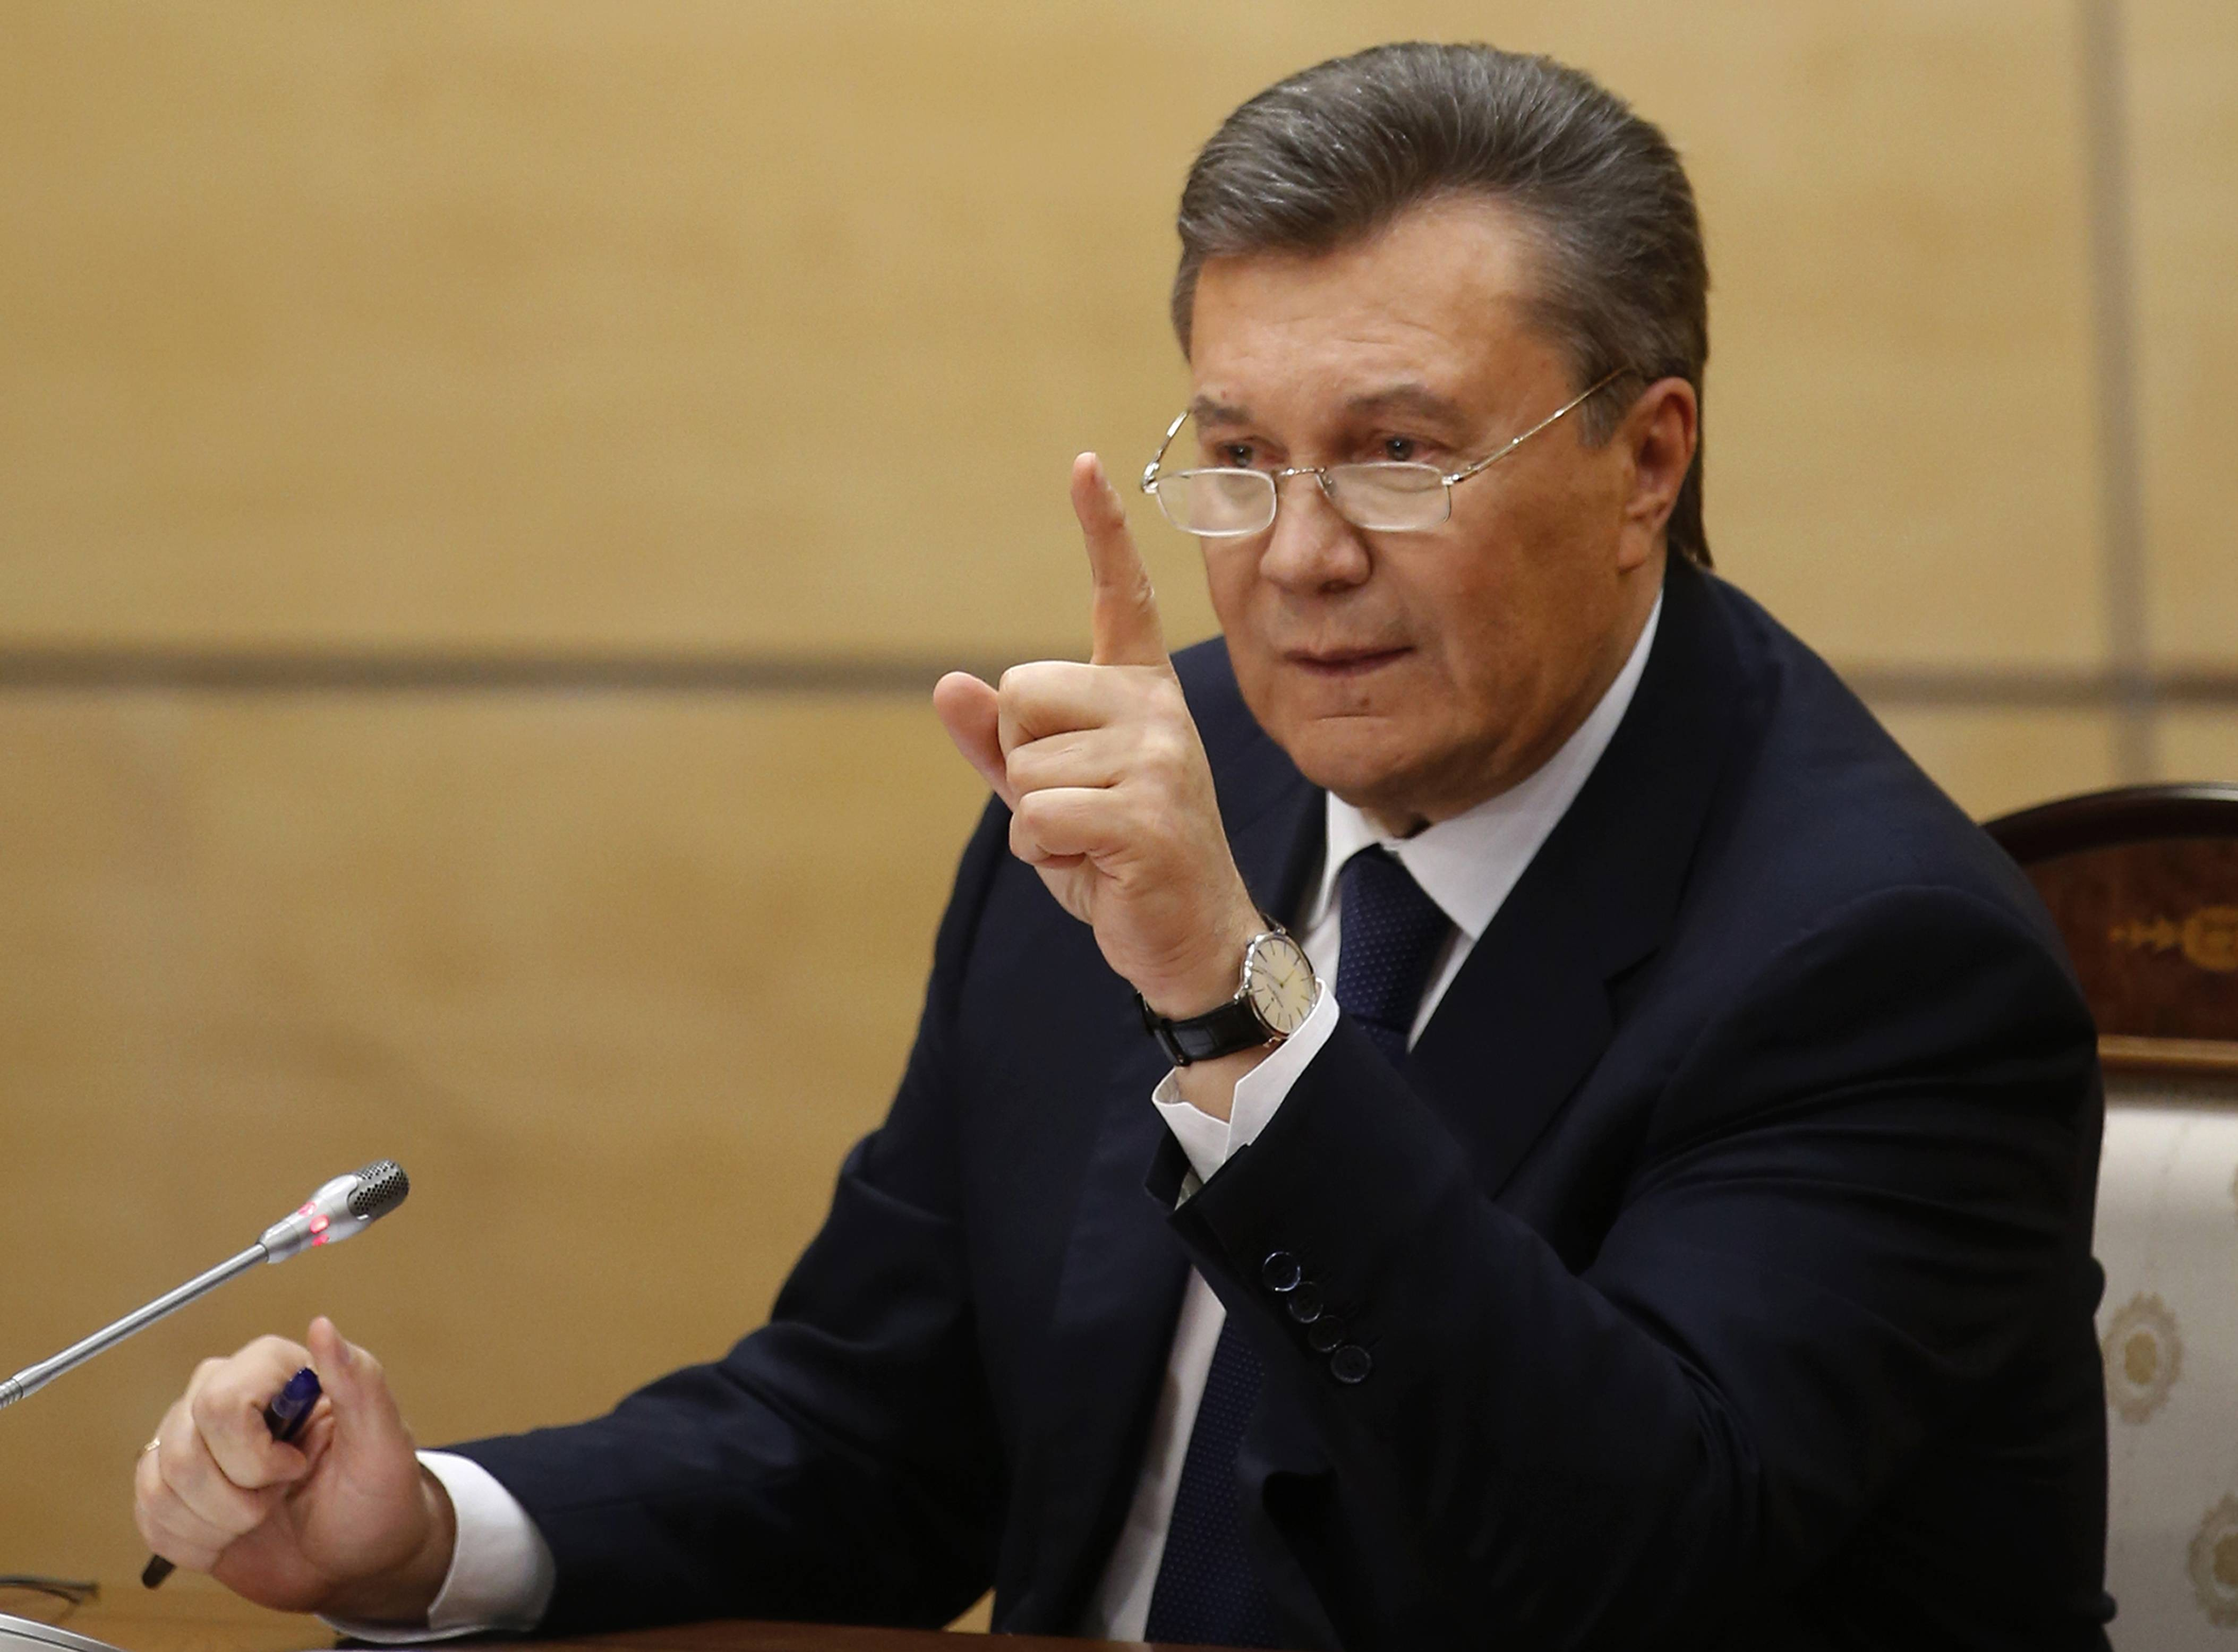 Ukraine's fugitive President Viktor Yanukovych gives a news conference Friday in Rostov-on-Don, a city in southern Russia about 600 miles from Moscow. Making his first public appearance since fleeing Ukraine, Yanukovych pledged Friday to fight for his country's future but said he will not ask for military assistance.